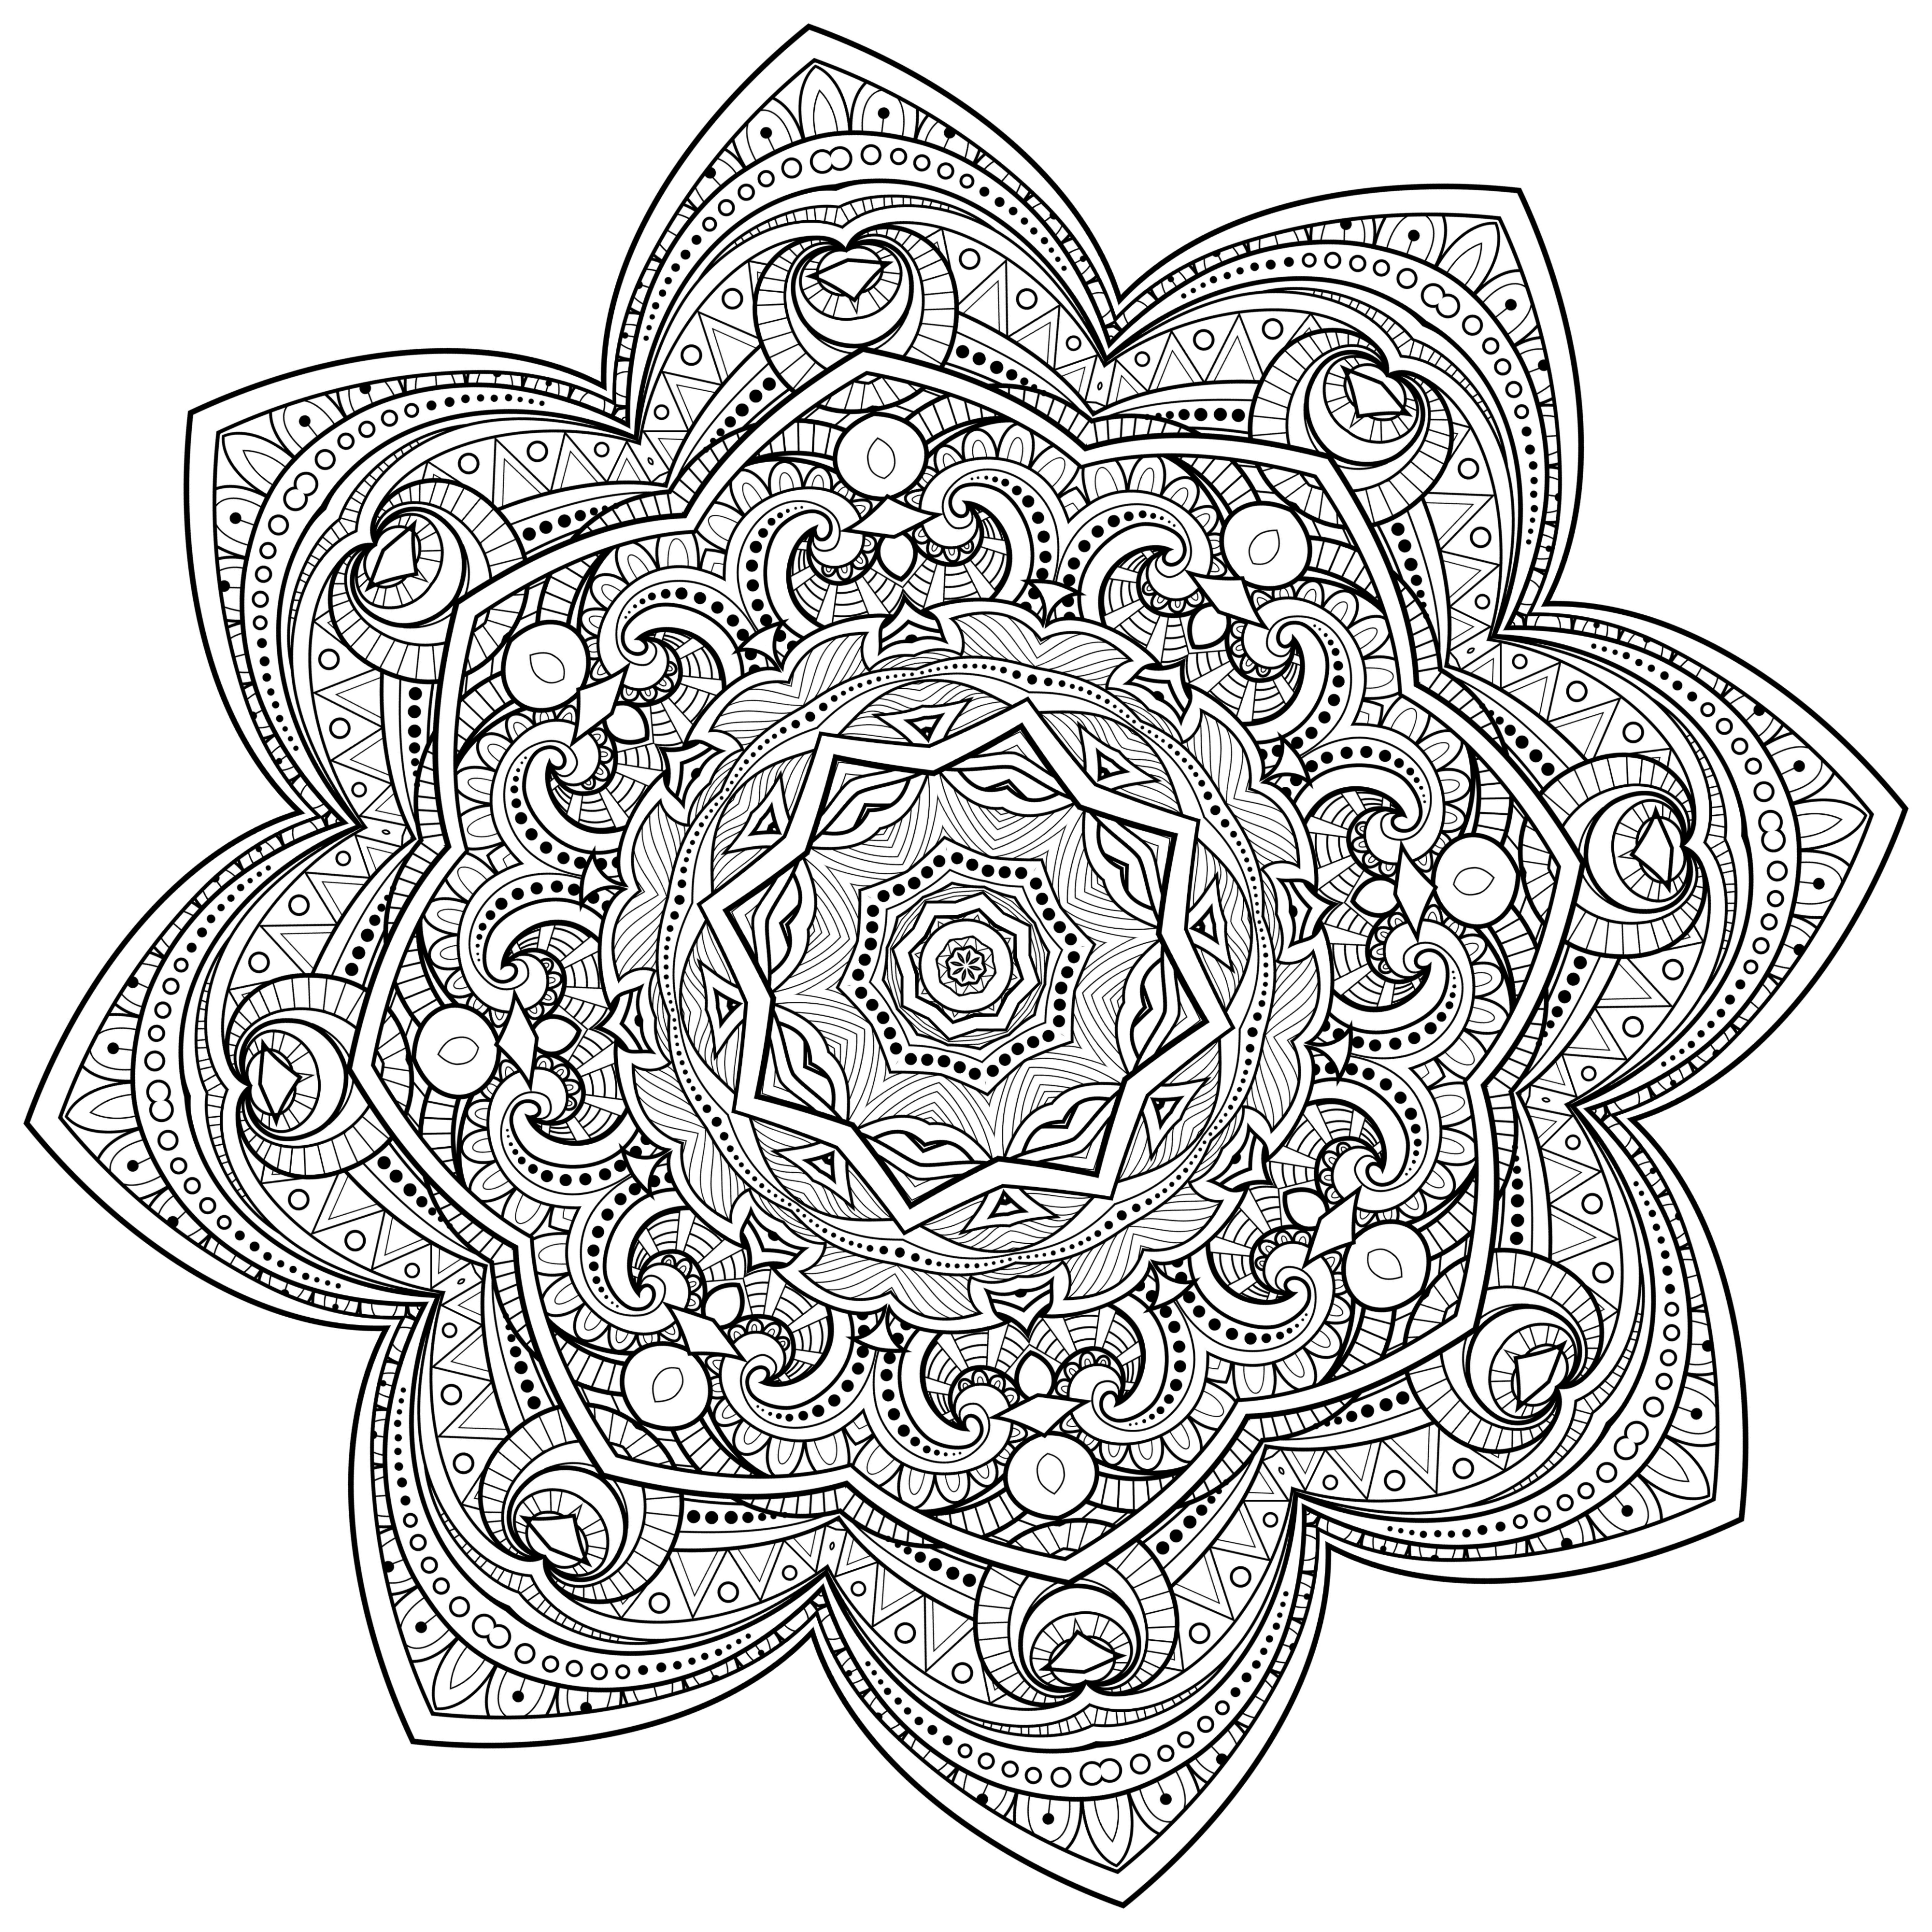 5 Free Printable Coloring Pages Mandala Templates The Maven Circle Mandala Coloring Pages Blank Coloring Pages Coloring Pages